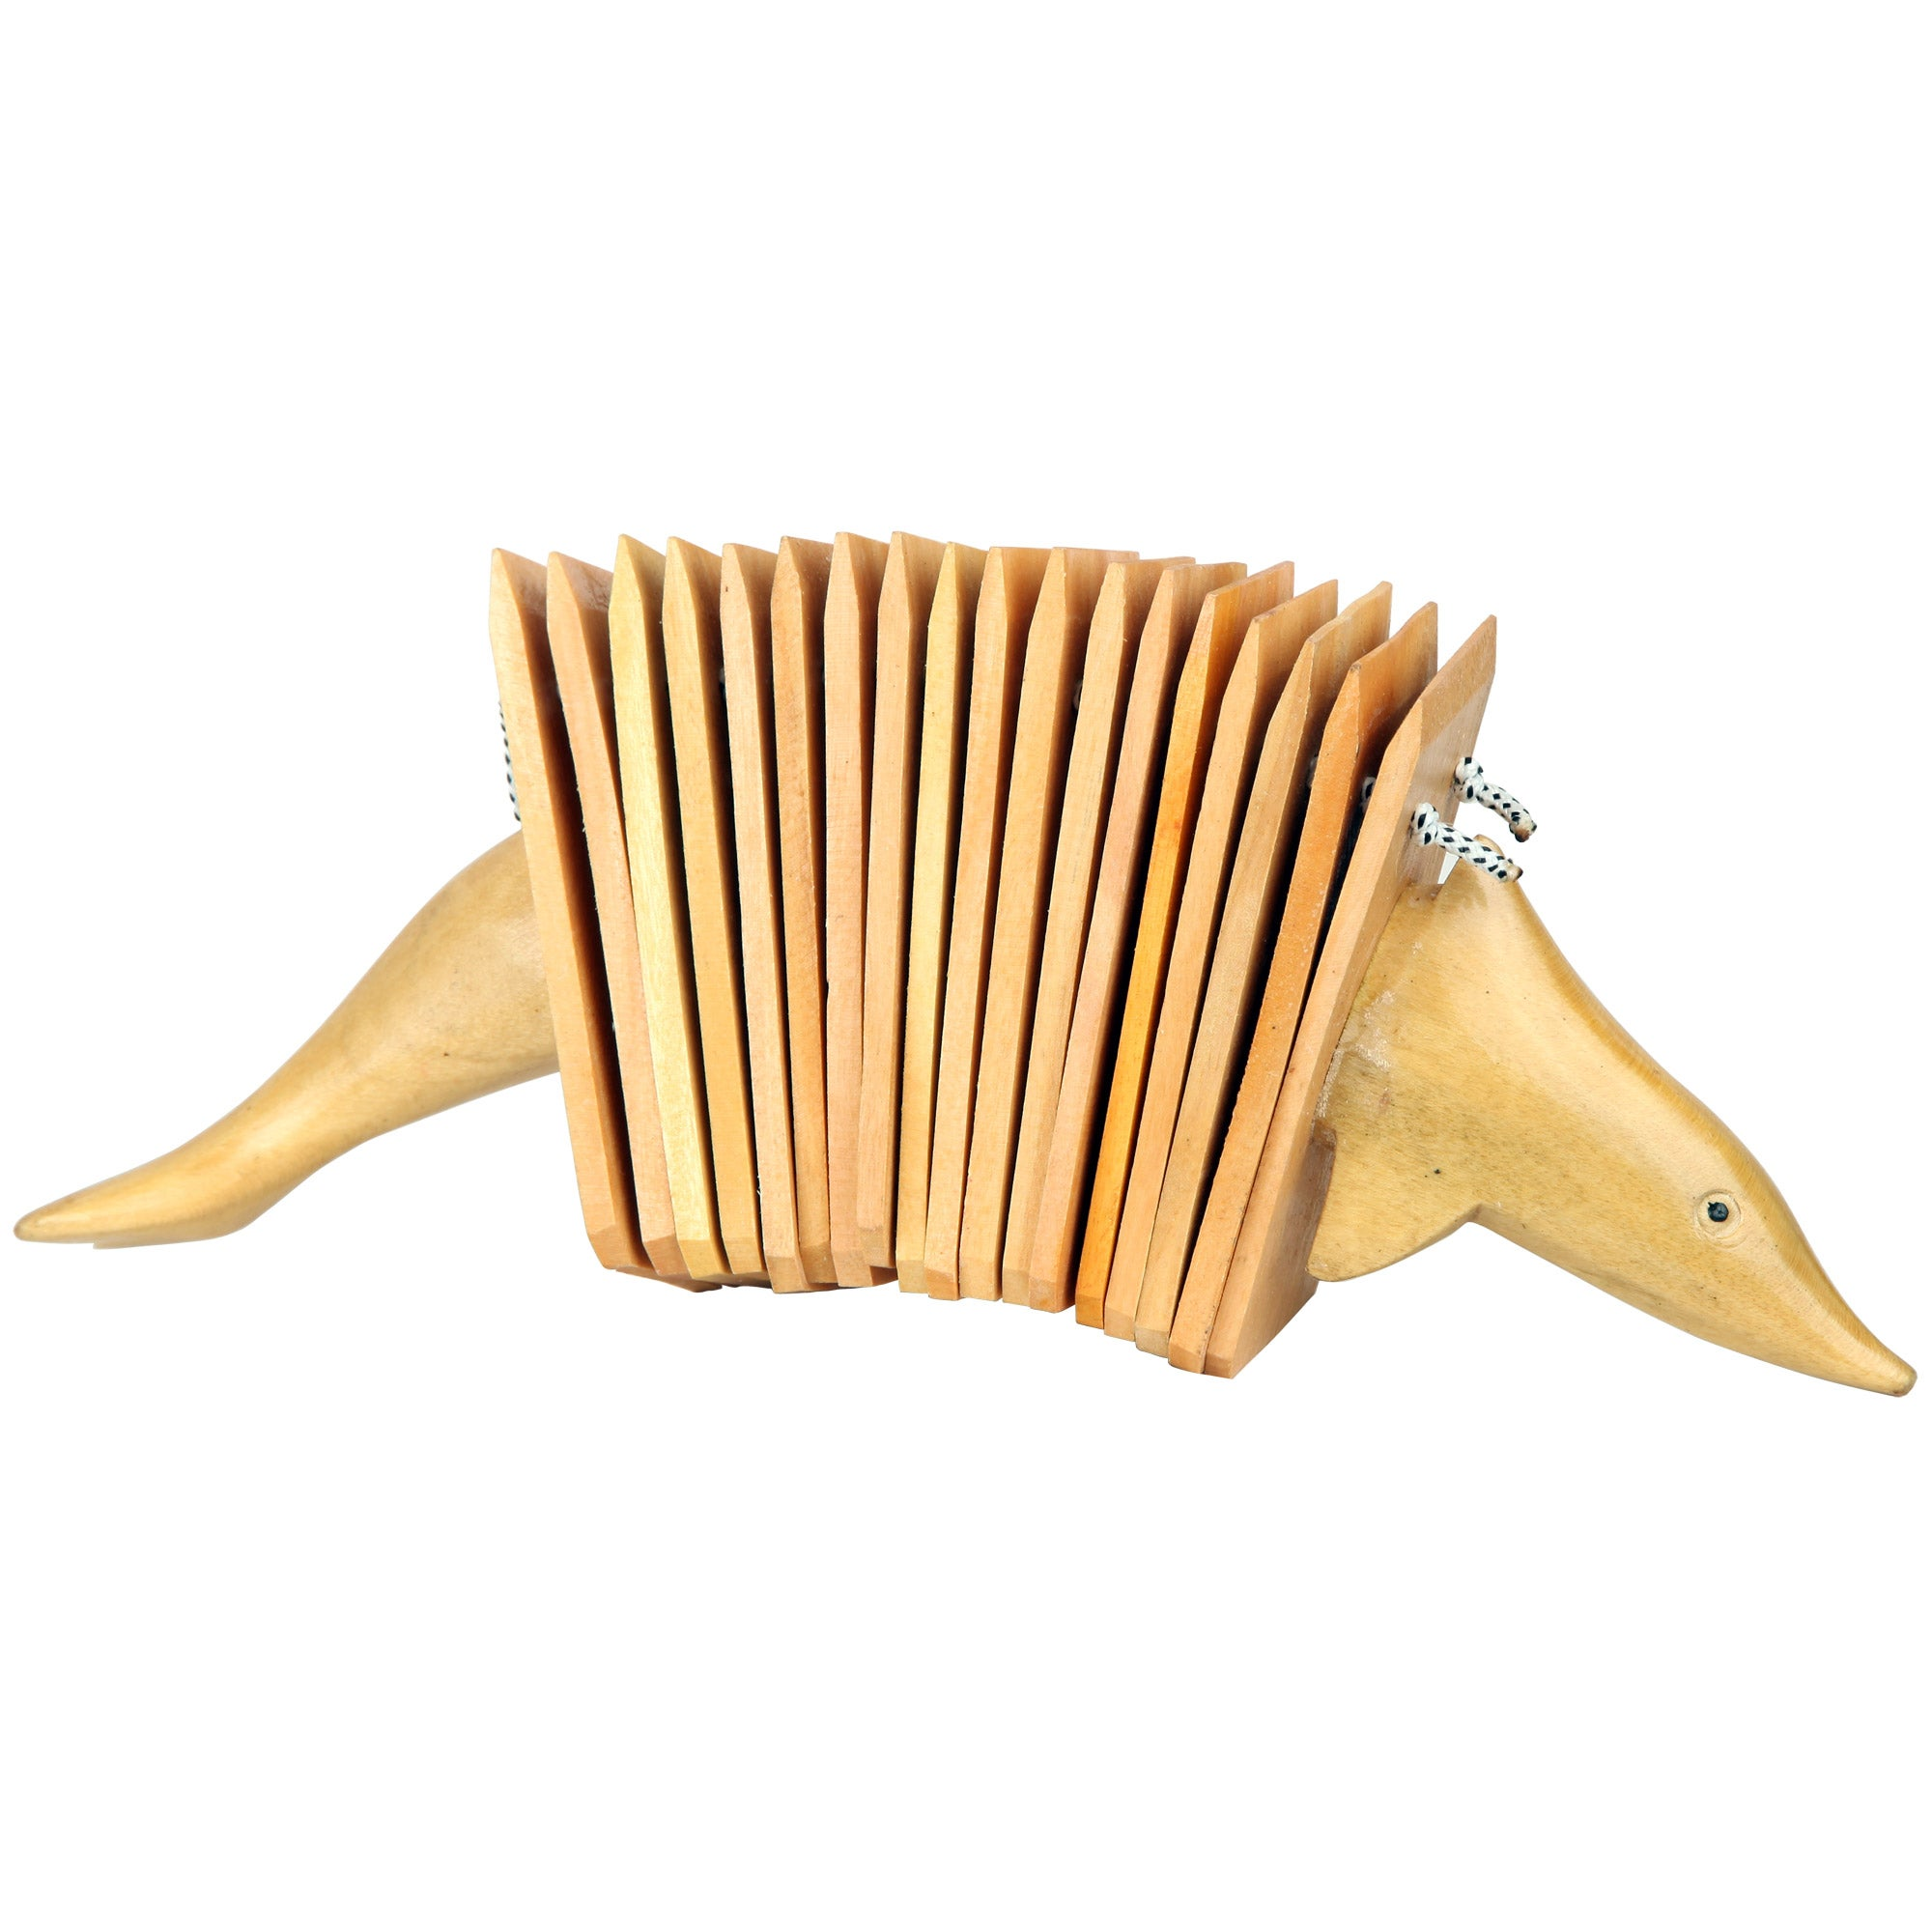 Dolphin Mahogany Wood Clacker Percussion Instrument (Indonesia)